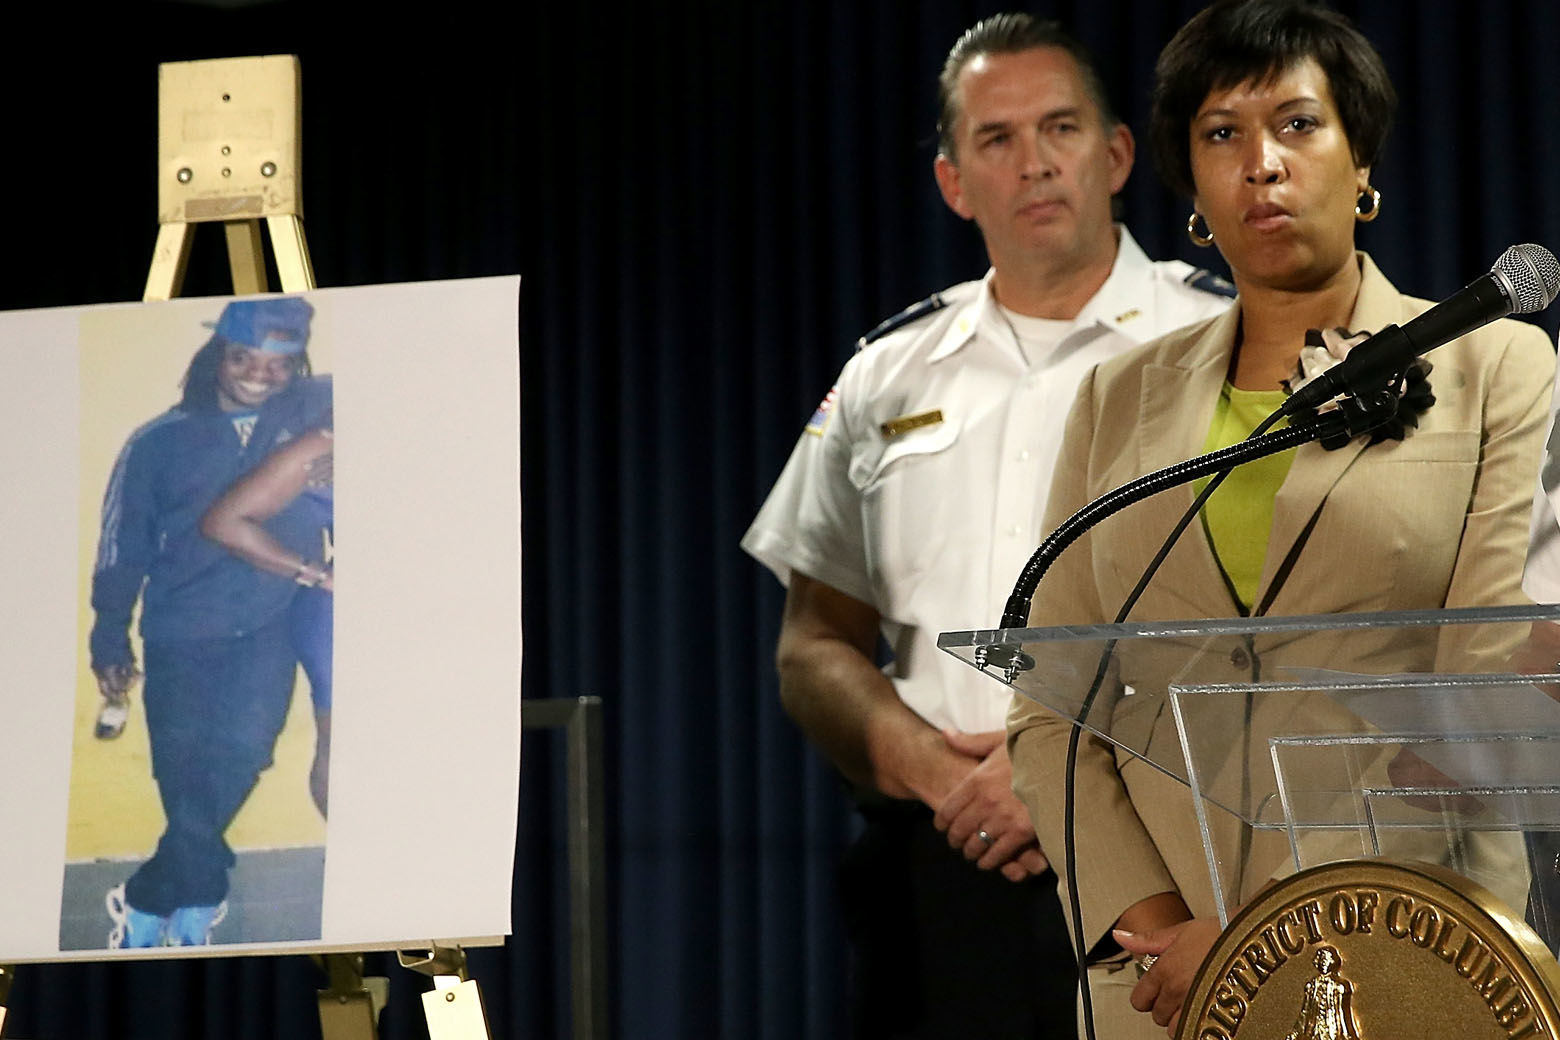 WASHINGTON, DC - MAY 21: Mayor Muriel Bowser (C) of Washington, DC listens as Chief of the Metropolitan Police Department Cathy Lanier (R) speaks at a press conference at police headquarters May 21, 2015 in Washington, DC. Bowser and Lanier asked the public for help in locating a suspect, Daron Dylon Wint, in a quadruple murder in the killing of Savvas Savopoulos and his family. Authorities believe Wint may have traveled to the Brooklyn, New York area. (Photo by Win McNamee/Getty Images)